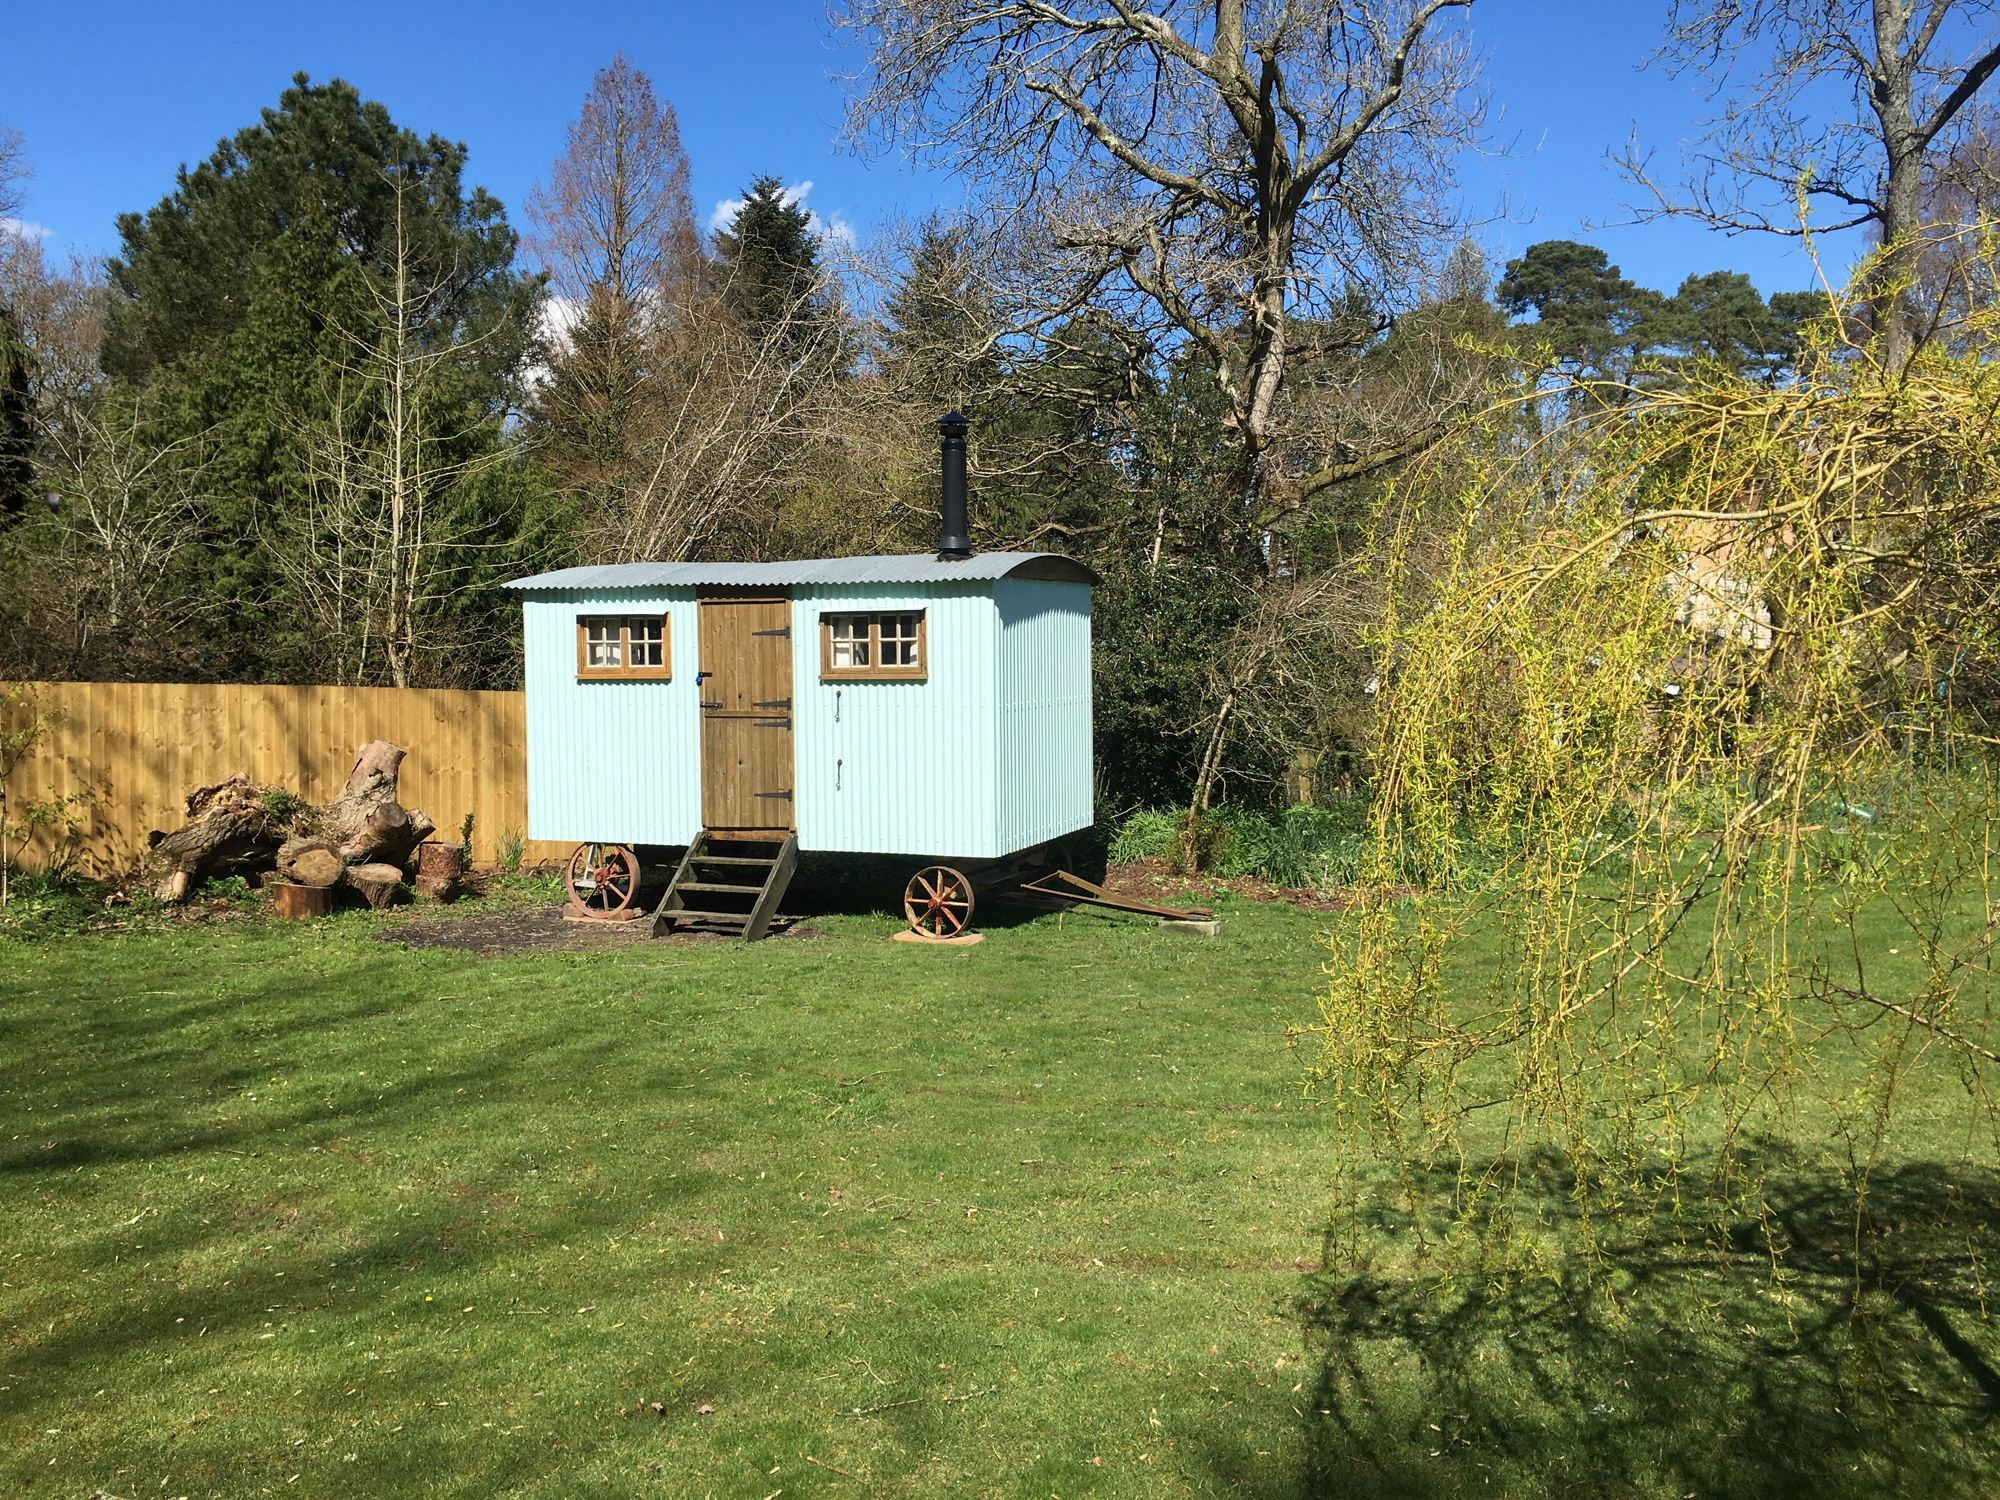 Glamping in Hampshire holidays at Cool Places